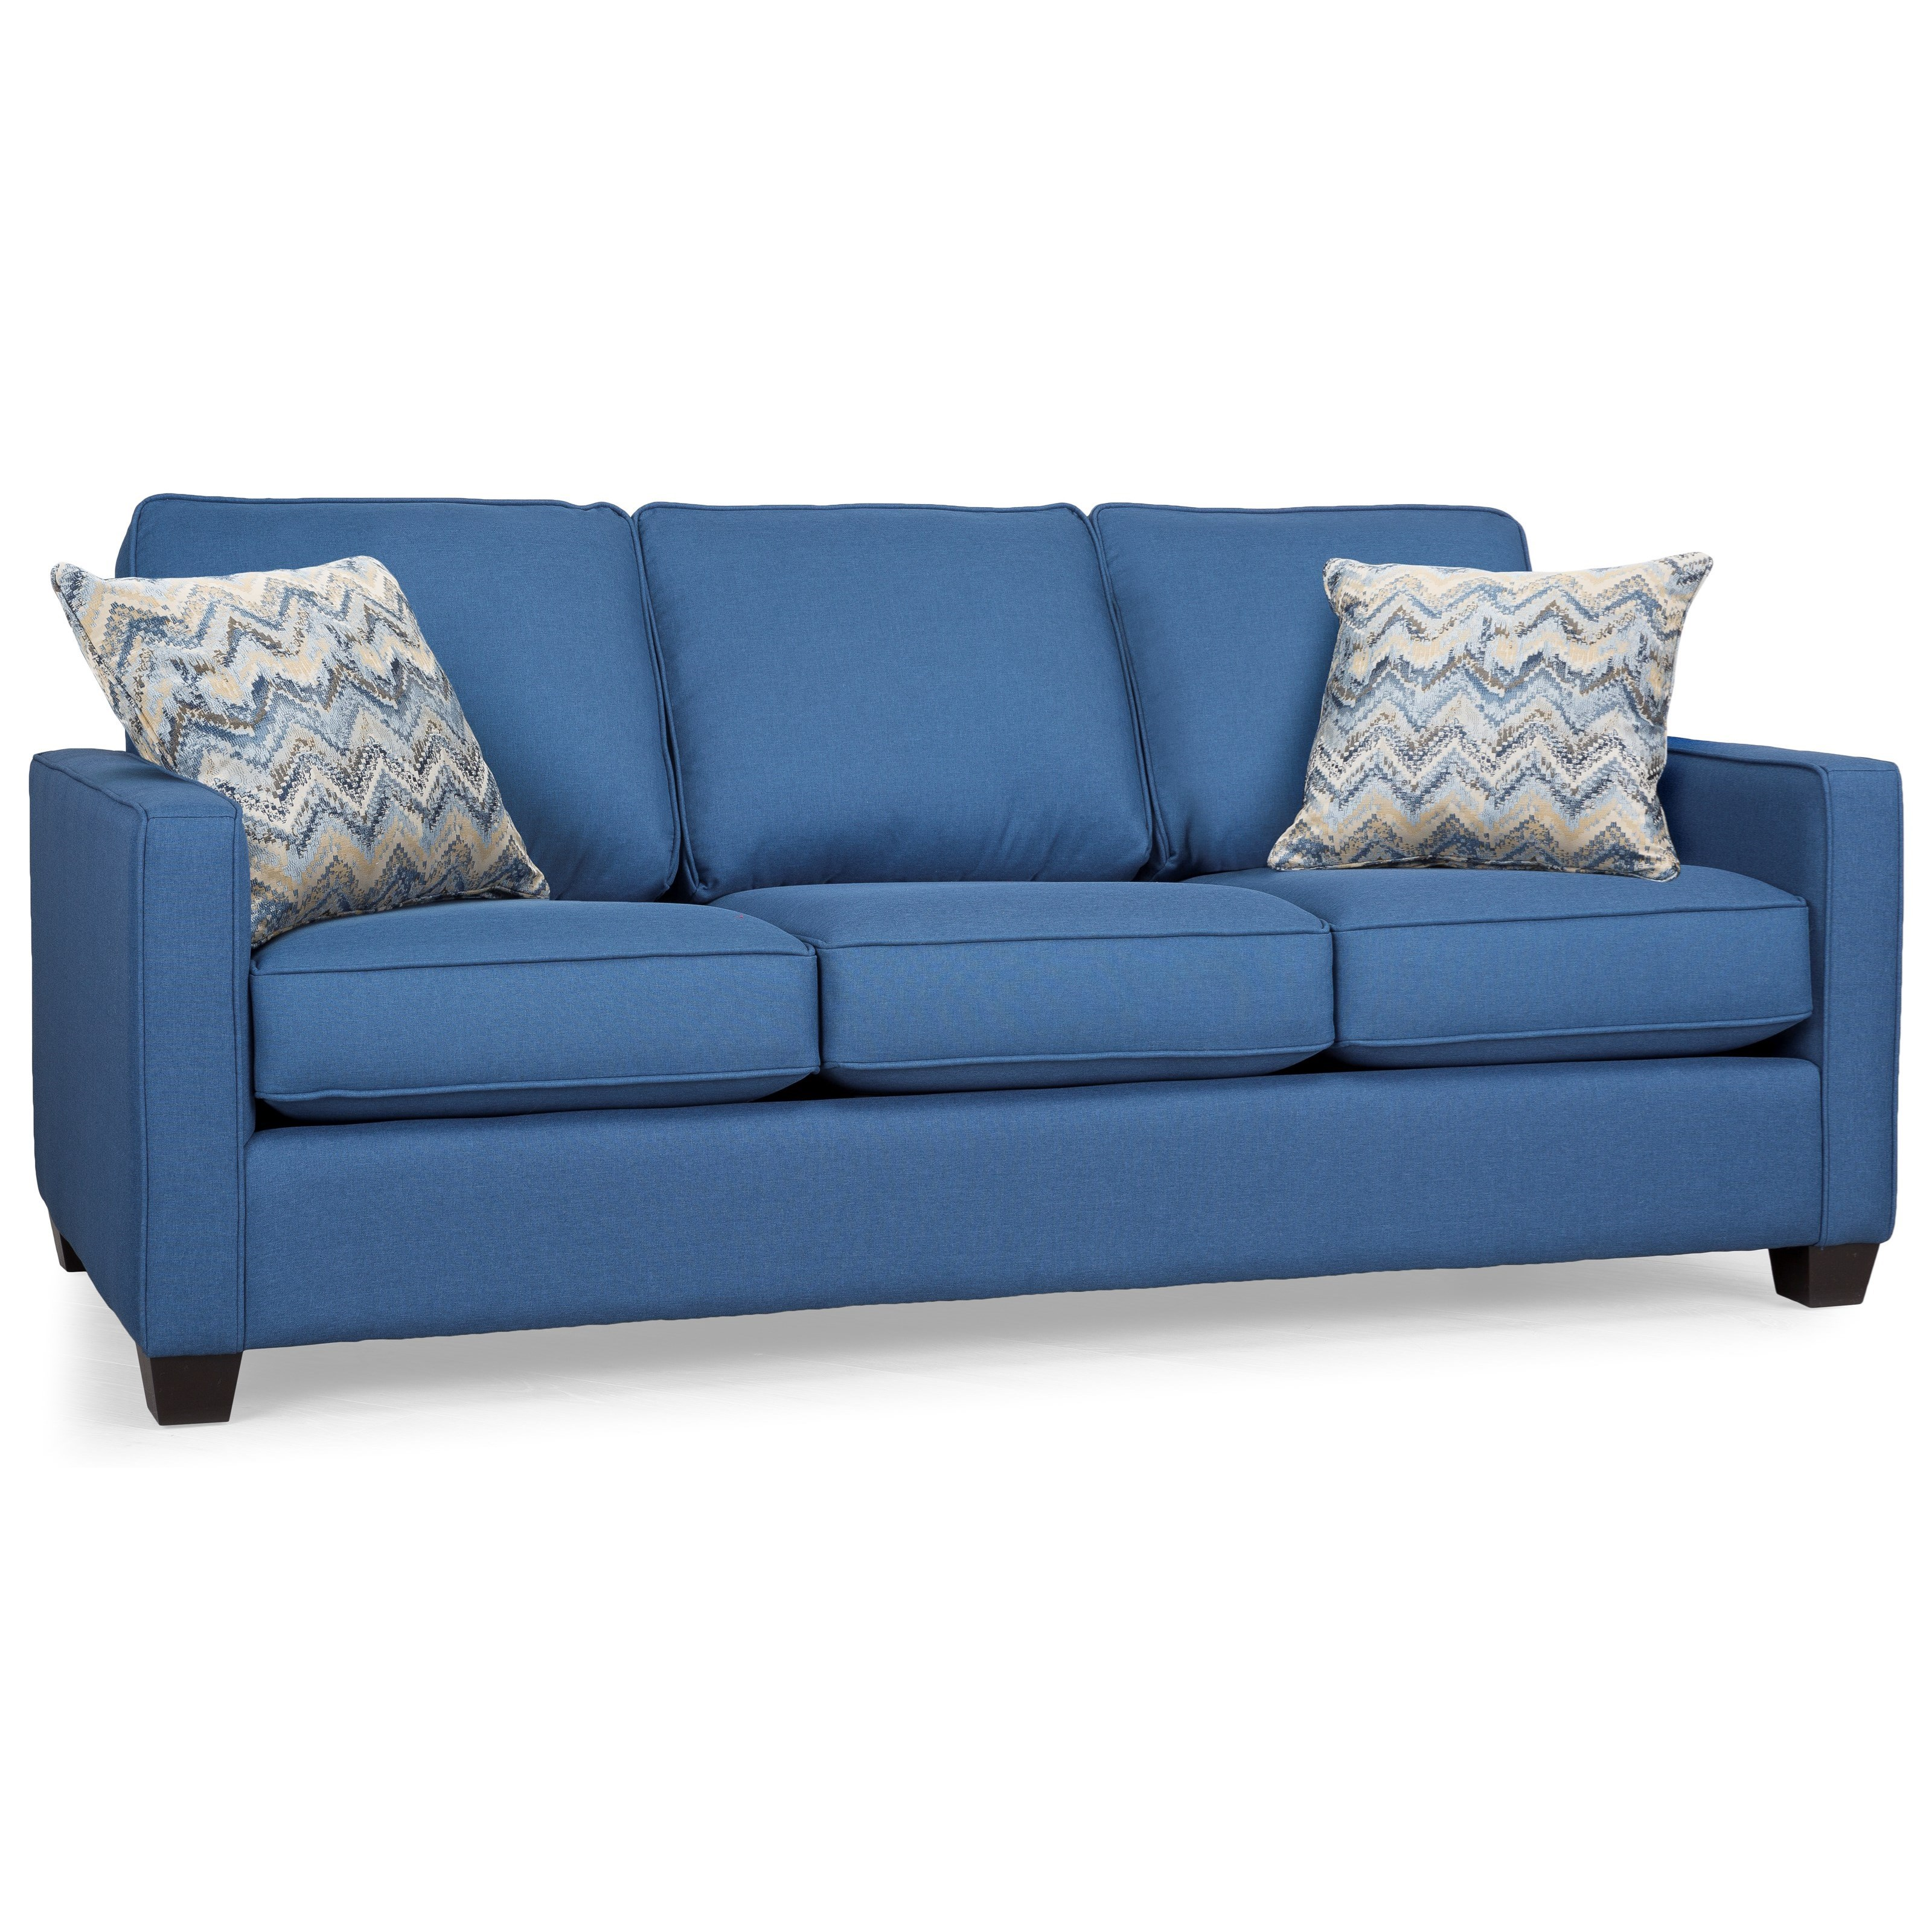 2855 Sofa by Decor-Rest at Stoney Creek Furniture